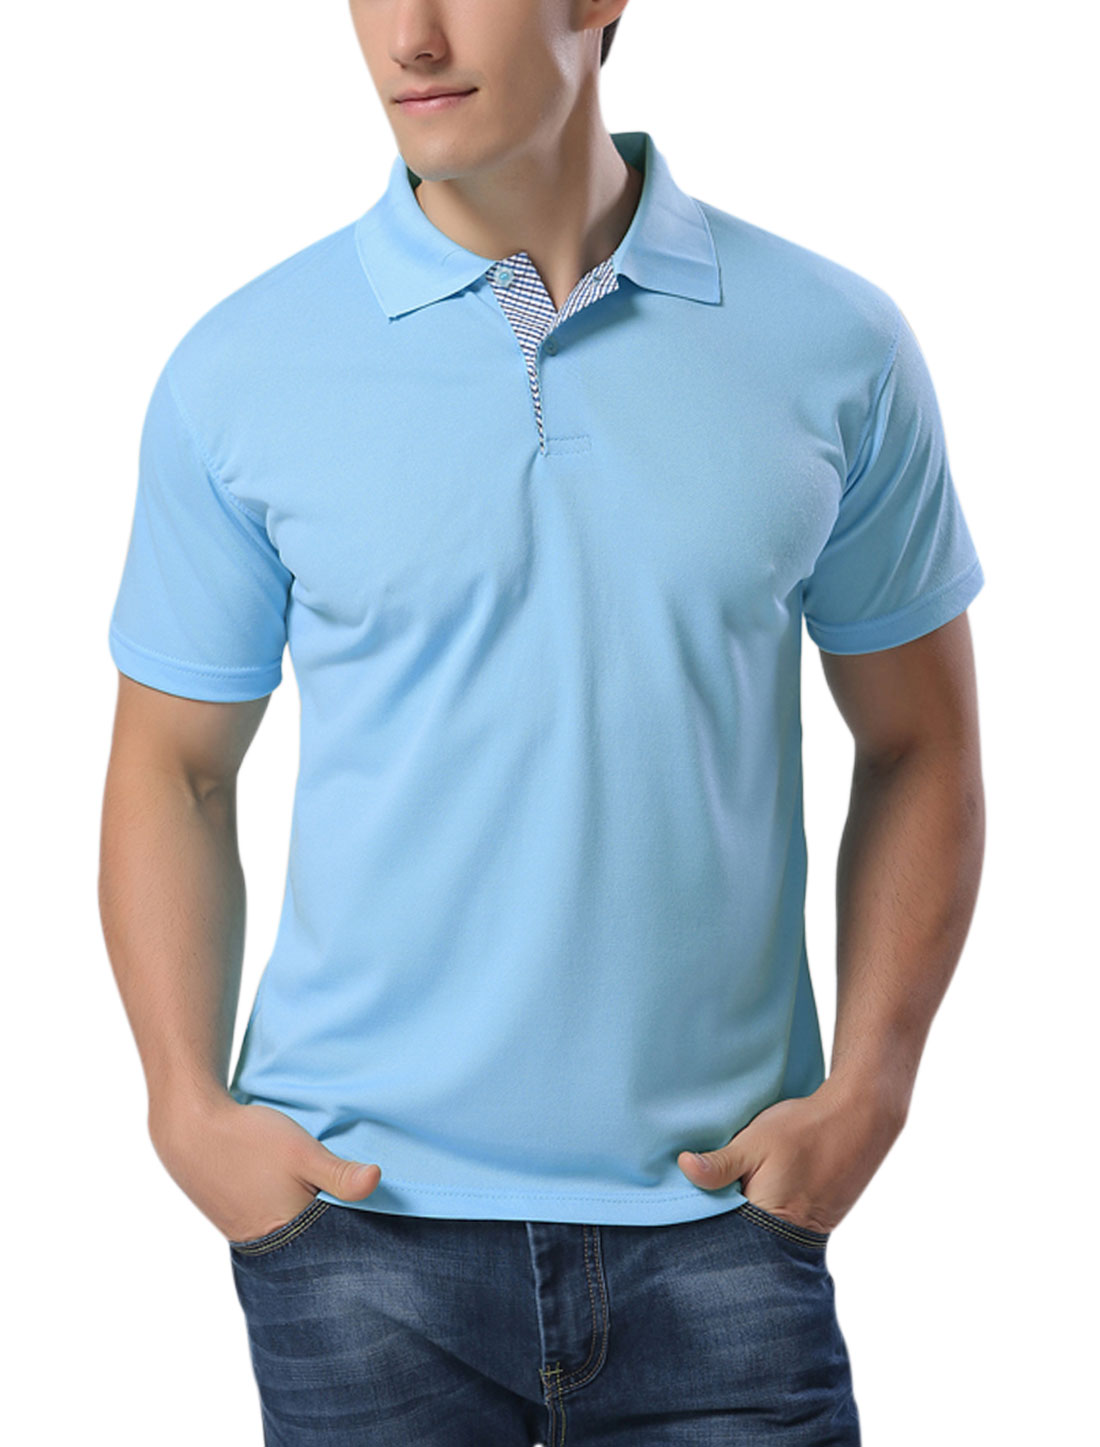 Man Point Collar Button Closure Performance Polo Shirts Sky Blue M